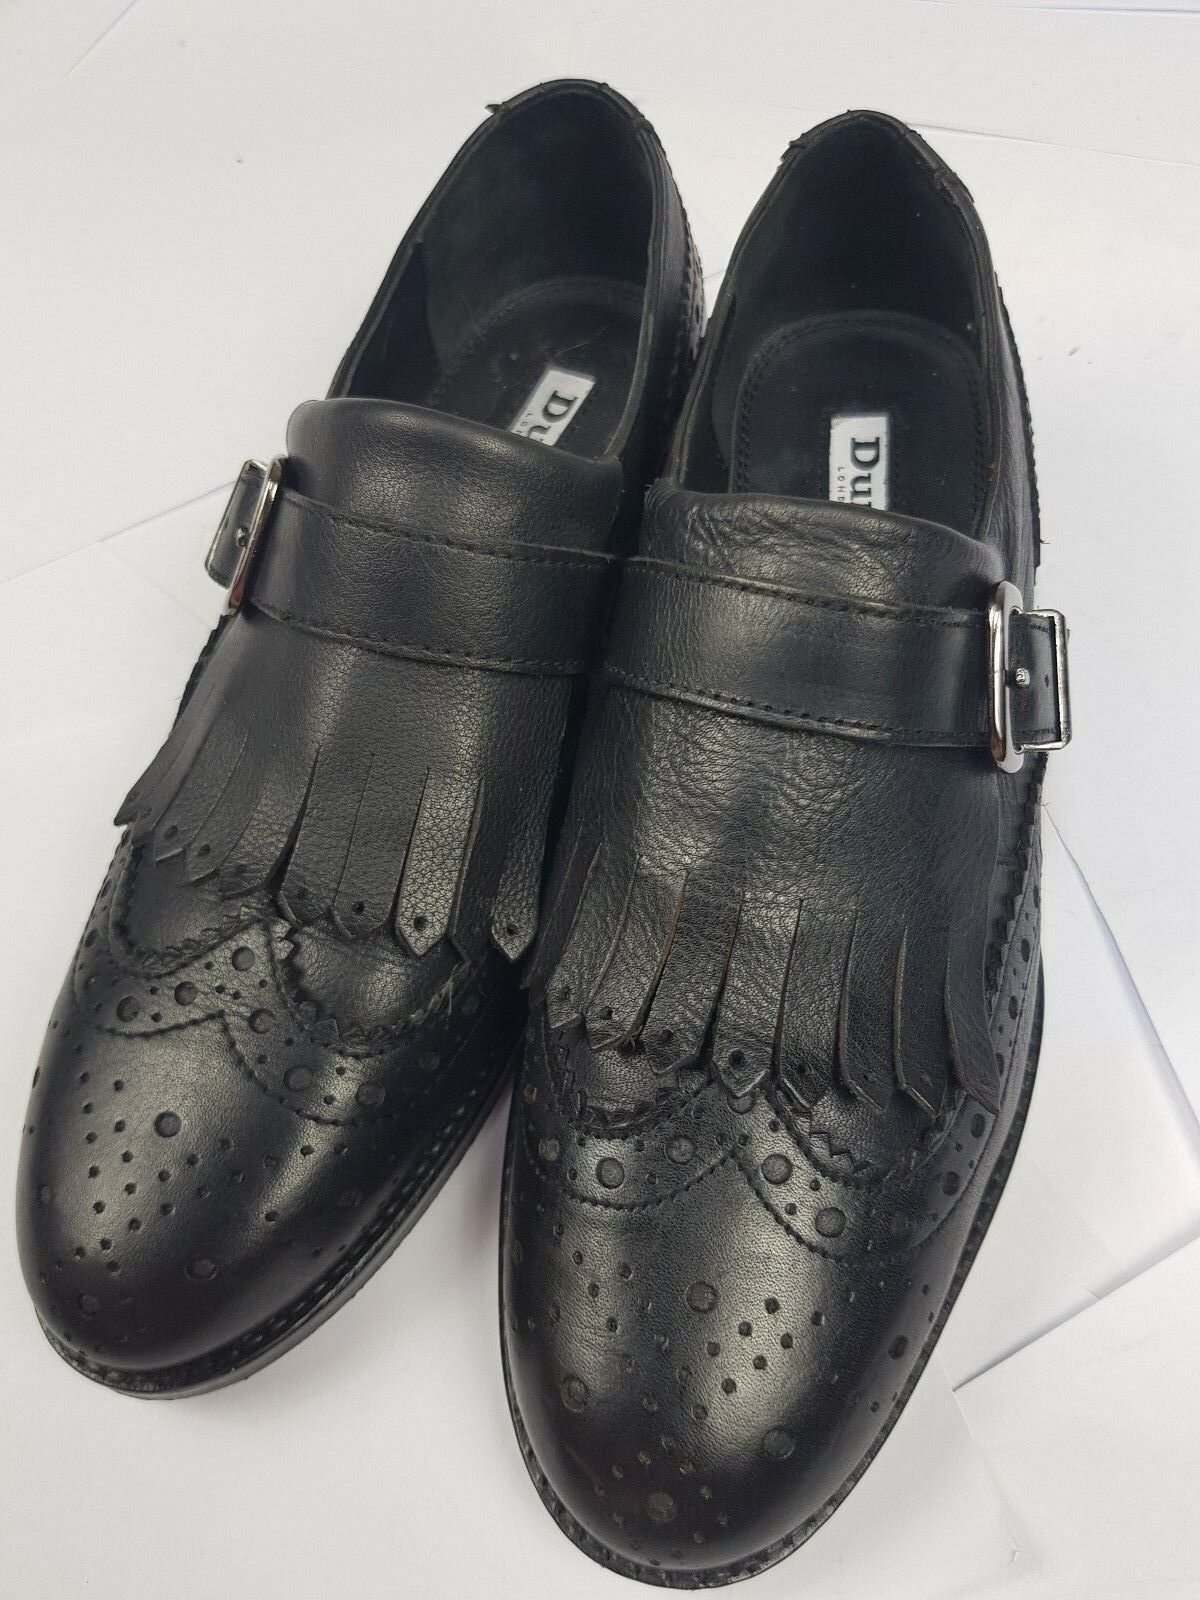 DUNE Womans Black Leather Strap Cond Buckle Shoes Brogues Excellent Cond Strap a9b785